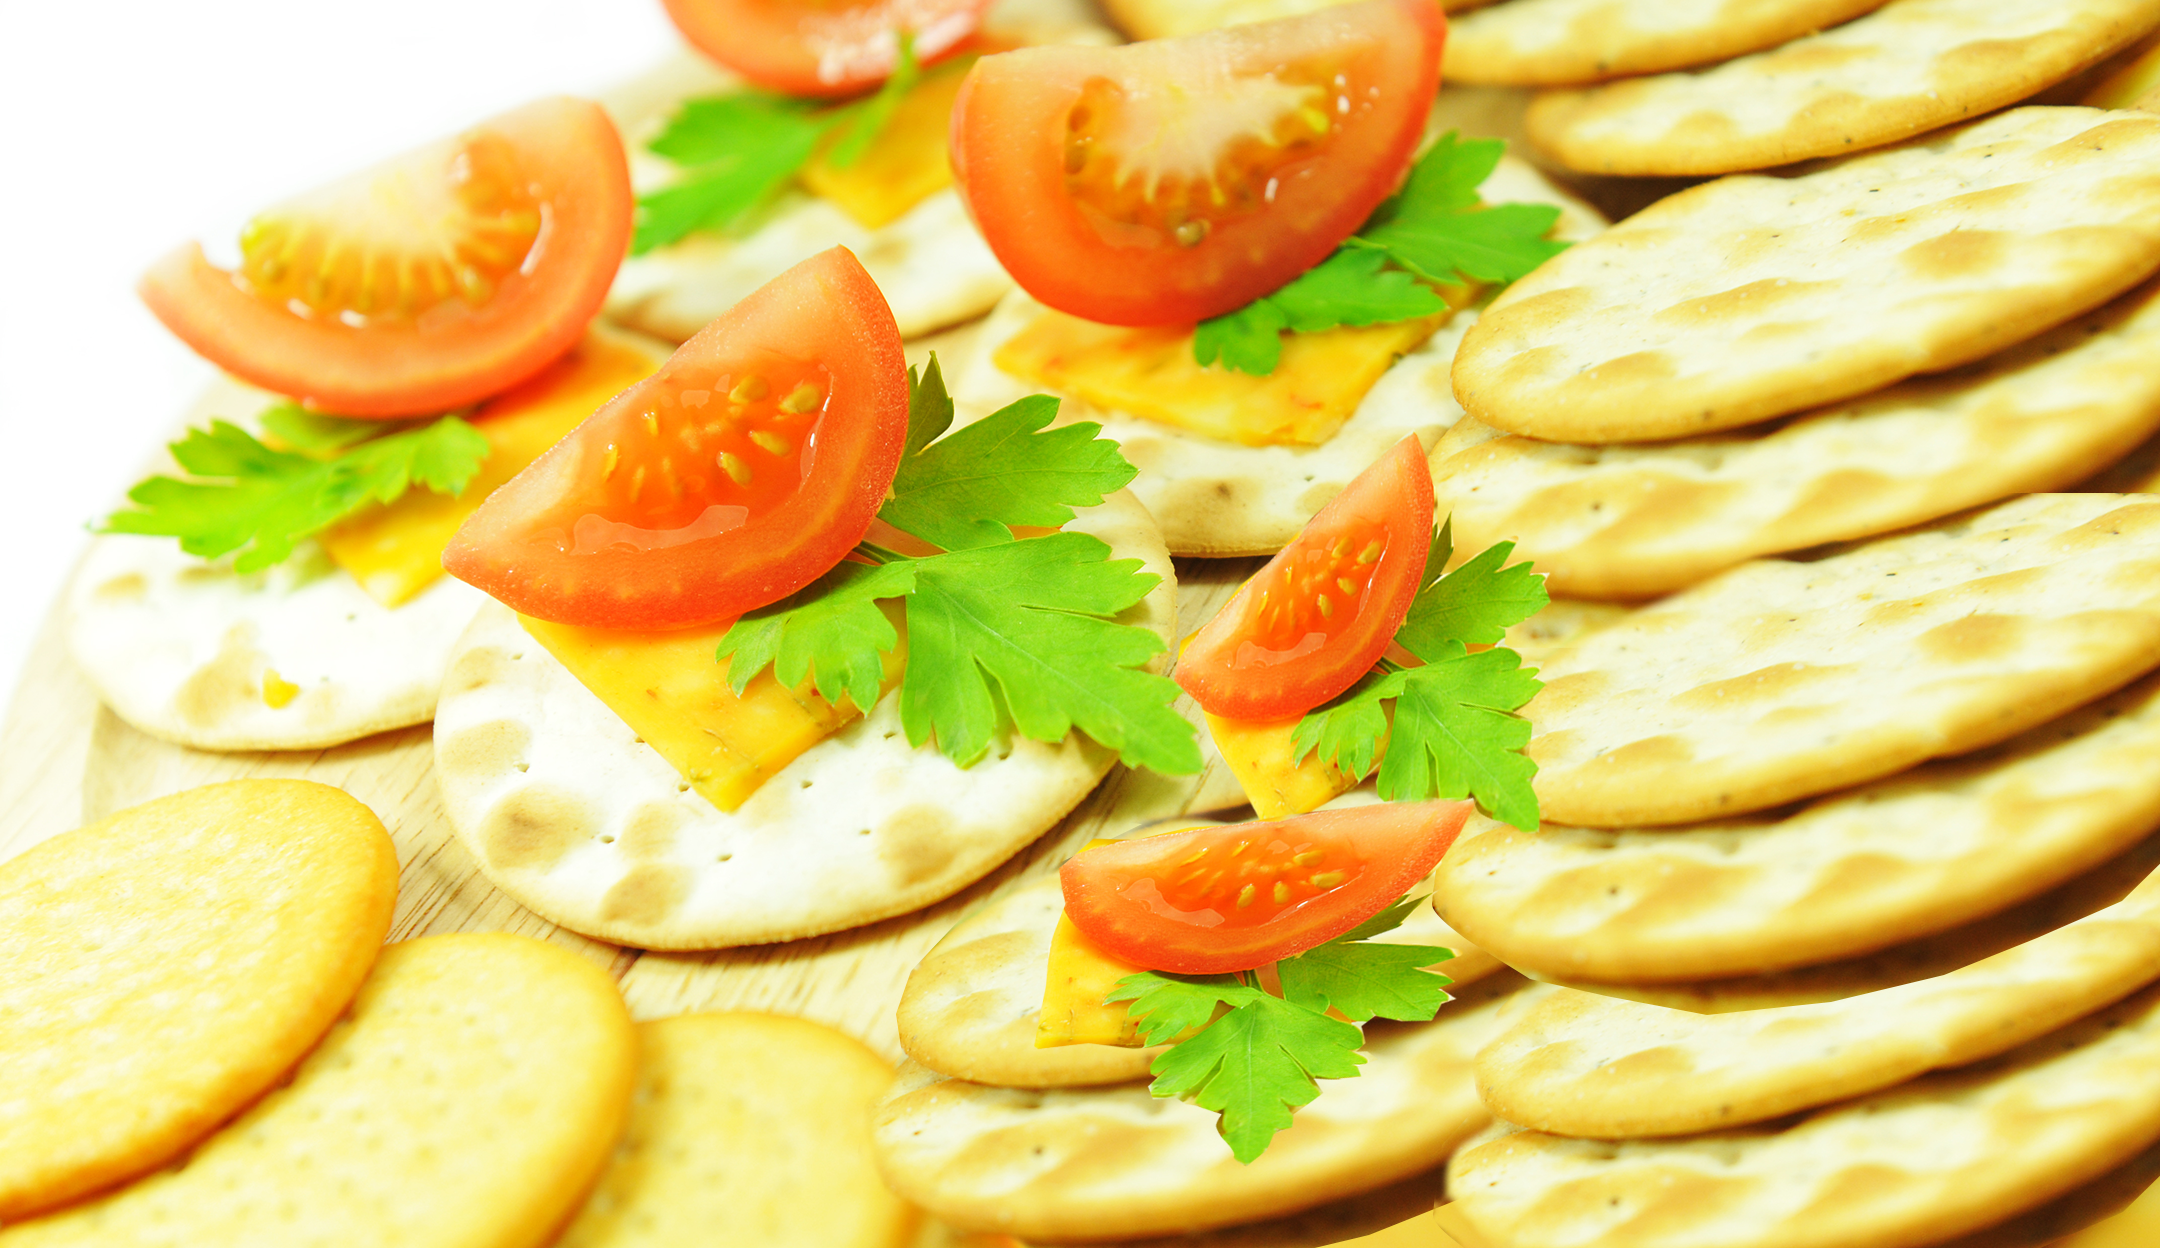 Crackers with cheese & tomato slices